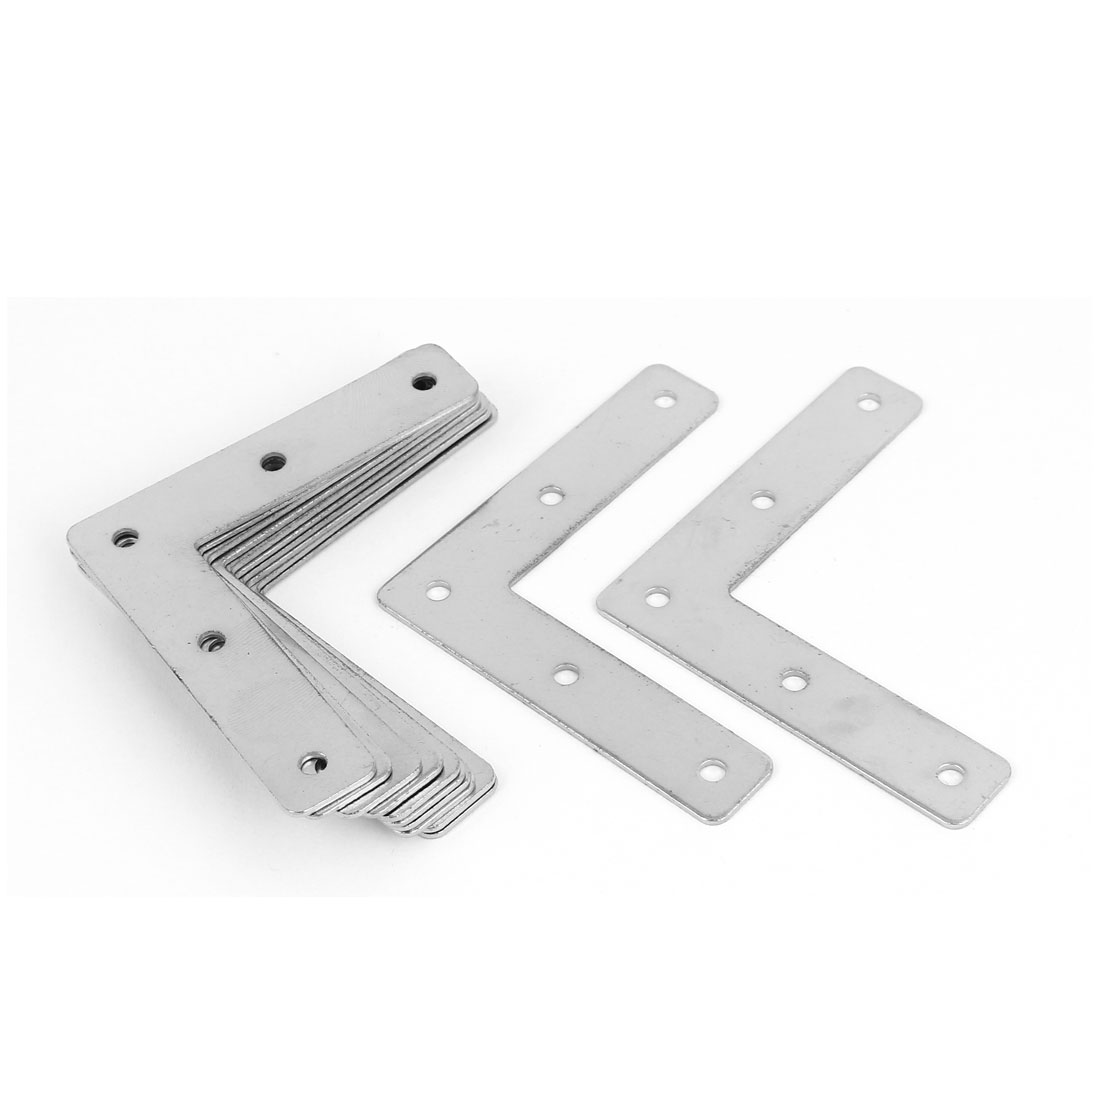 73mm x 73mm Angle Brackets Joint Fasteners Flat L Shape Repair Plates 12PCS